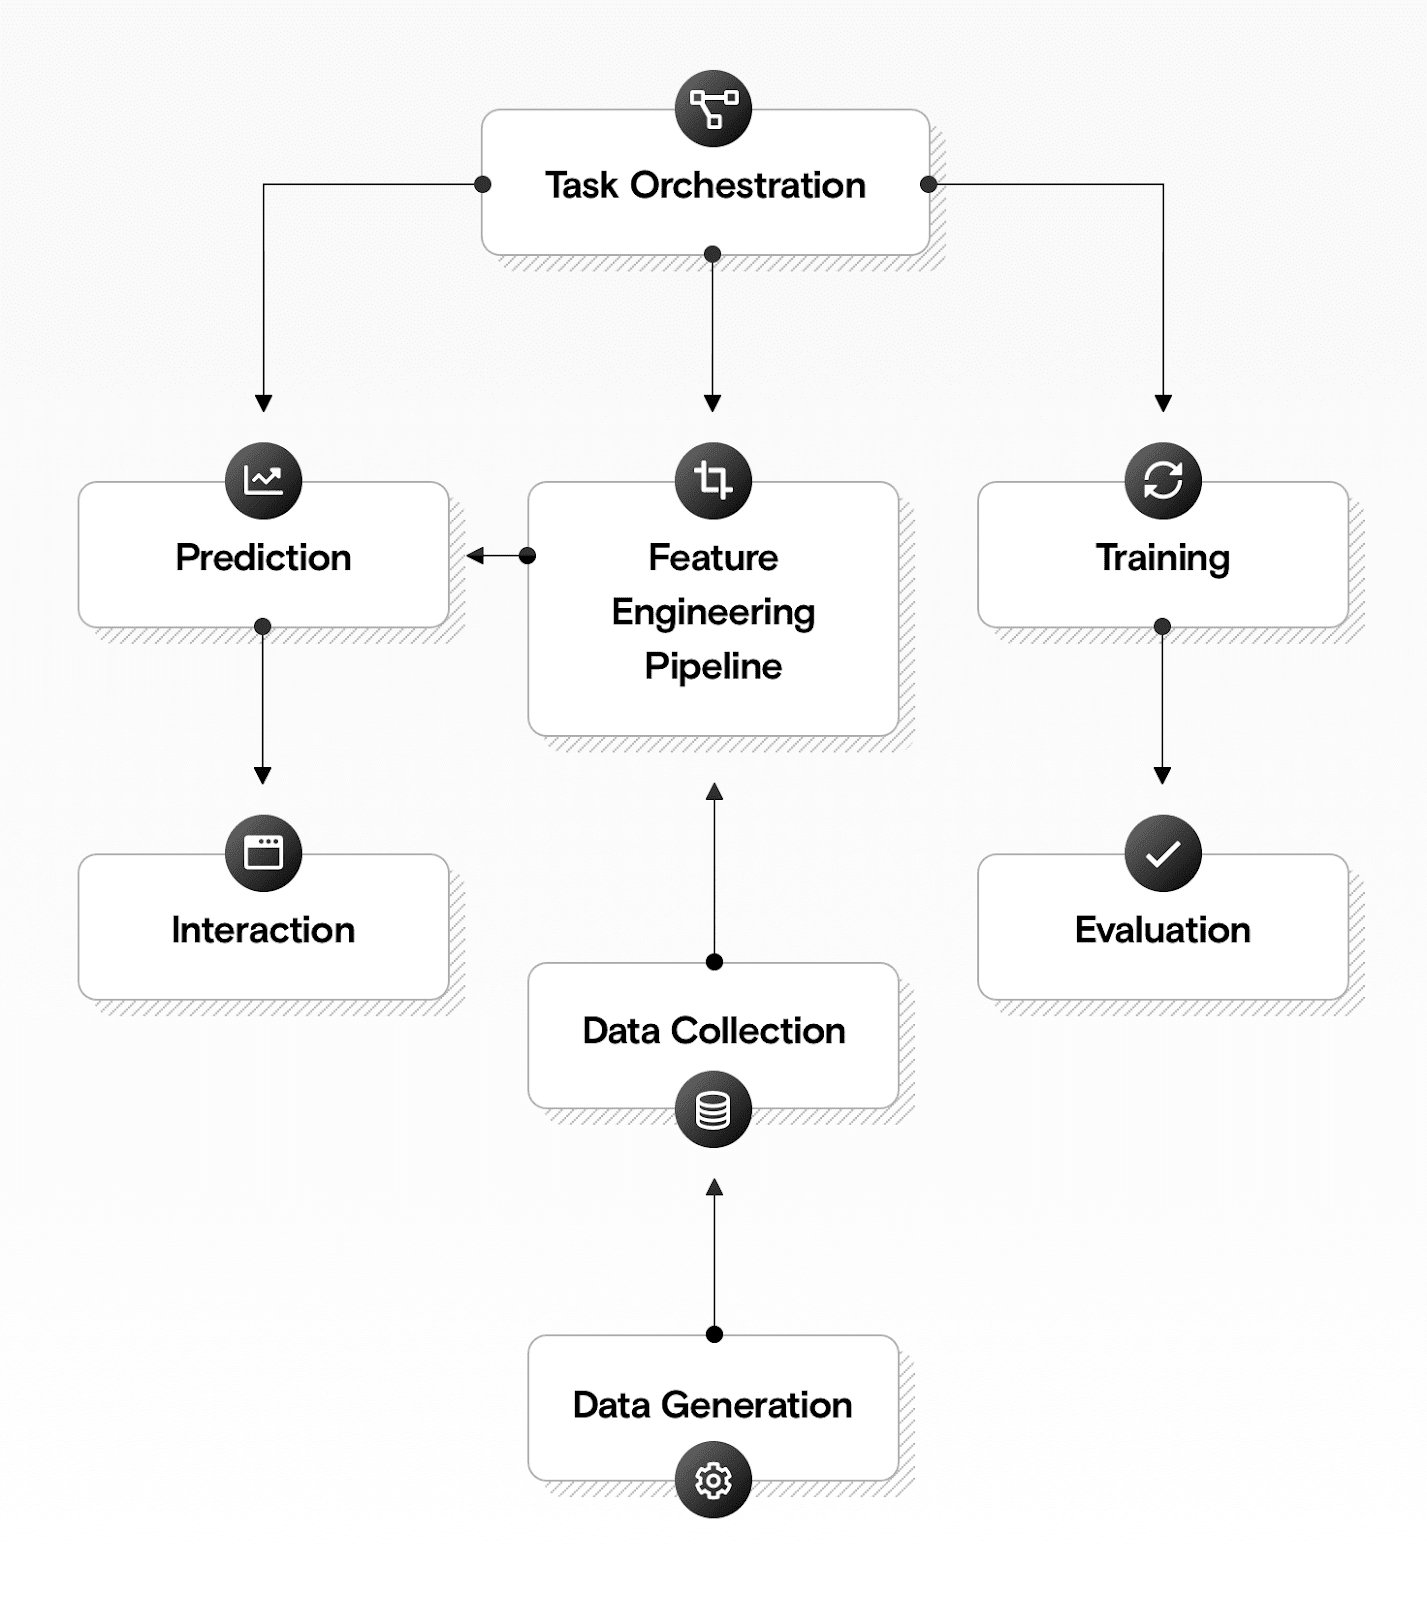 A diagram showing the components of a machine learning solution.